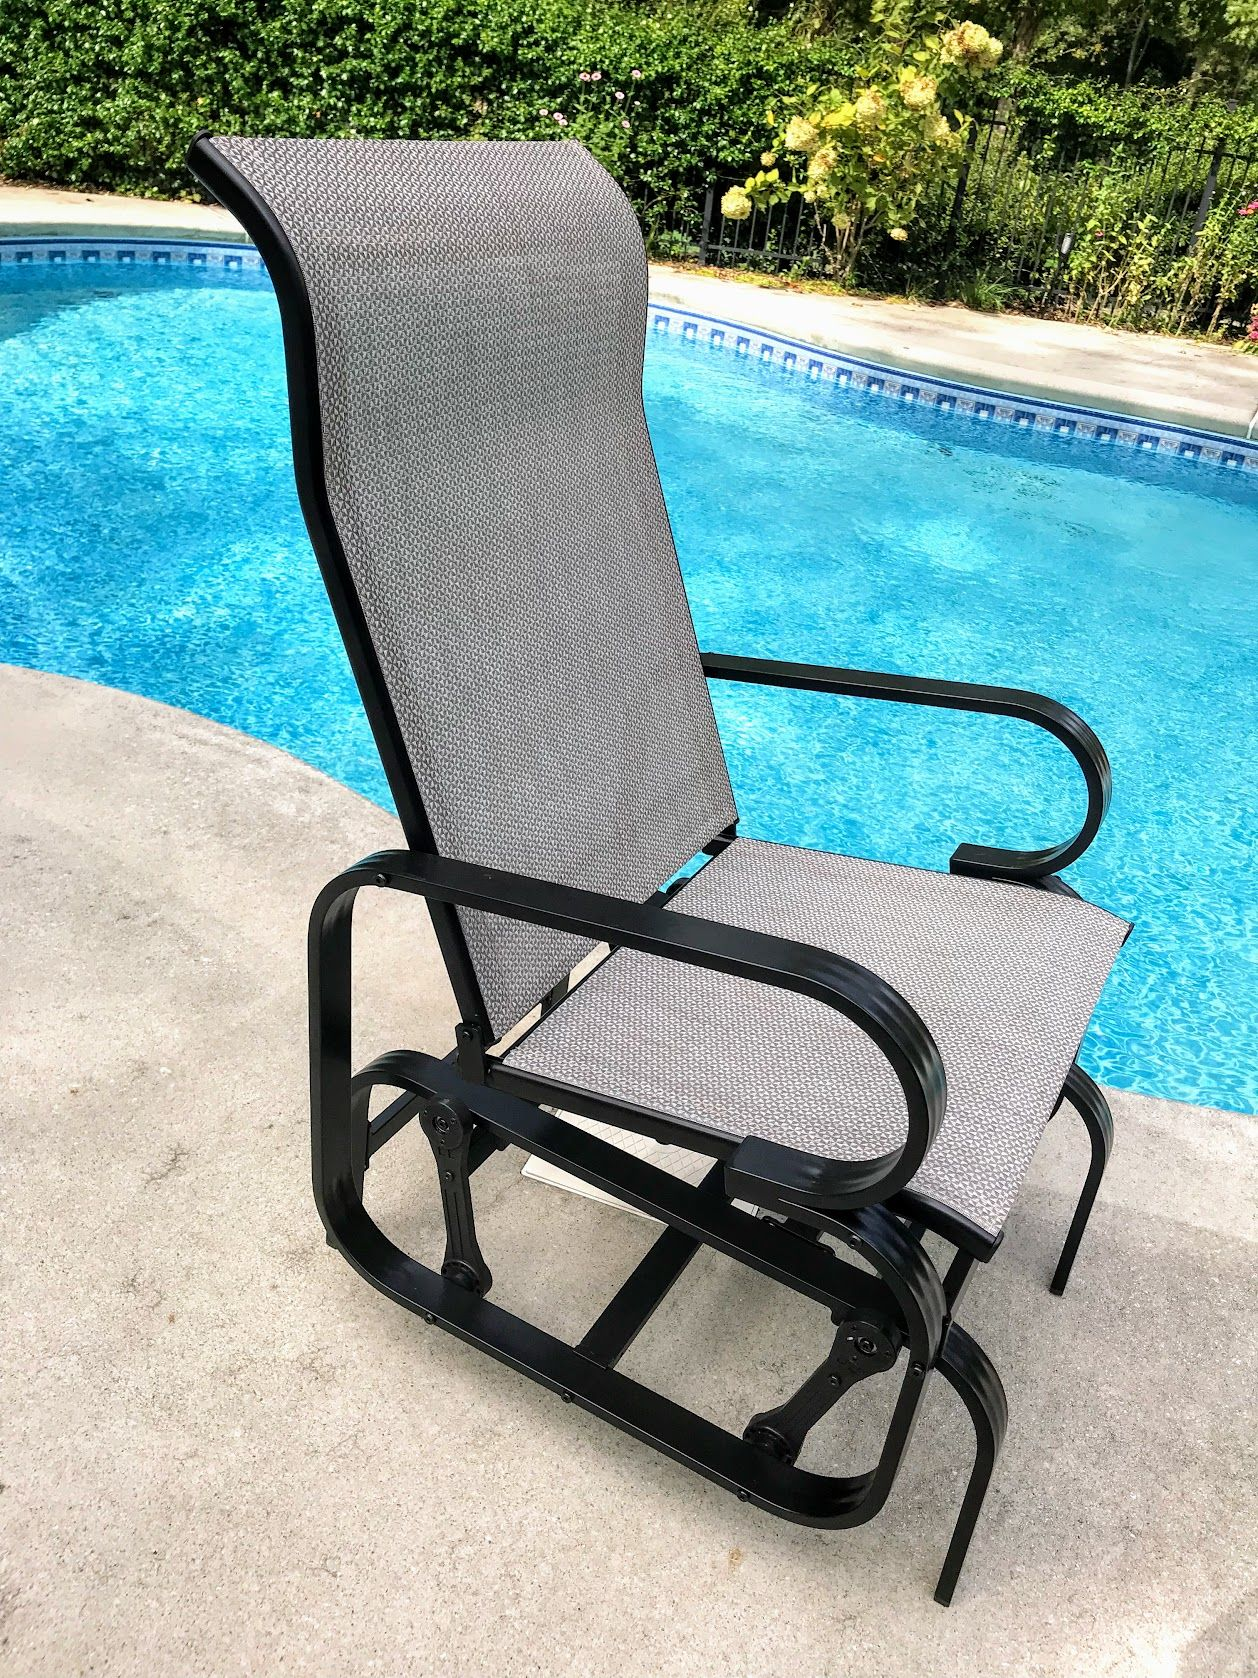 Swimming Pool Furniture Comfortable And Easy Maintenance Pool Furniture Outdoor Chairs Swimming Pool Chair